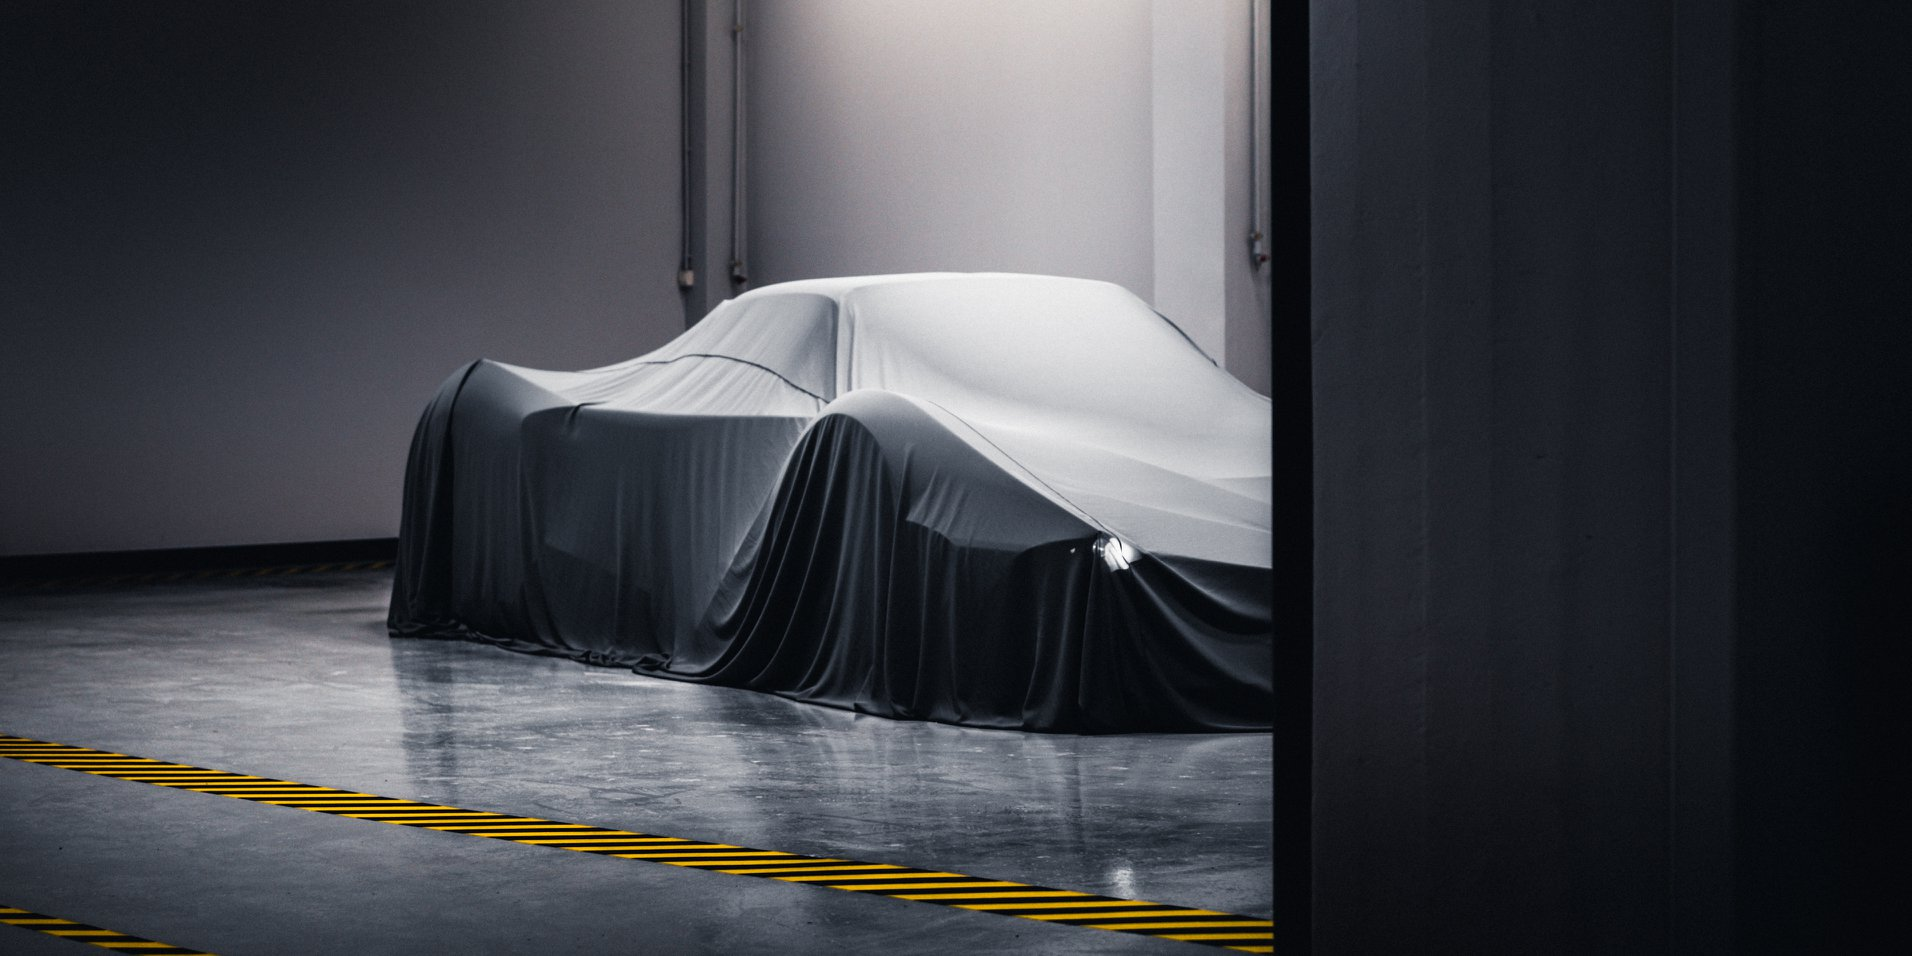 [Actualité] Les petits constructeurs et les artisans  - Page 43 Project-chaos-twin-turbo-v10-ultra-car-with-3000-hp-teased-comes-from-greece_1